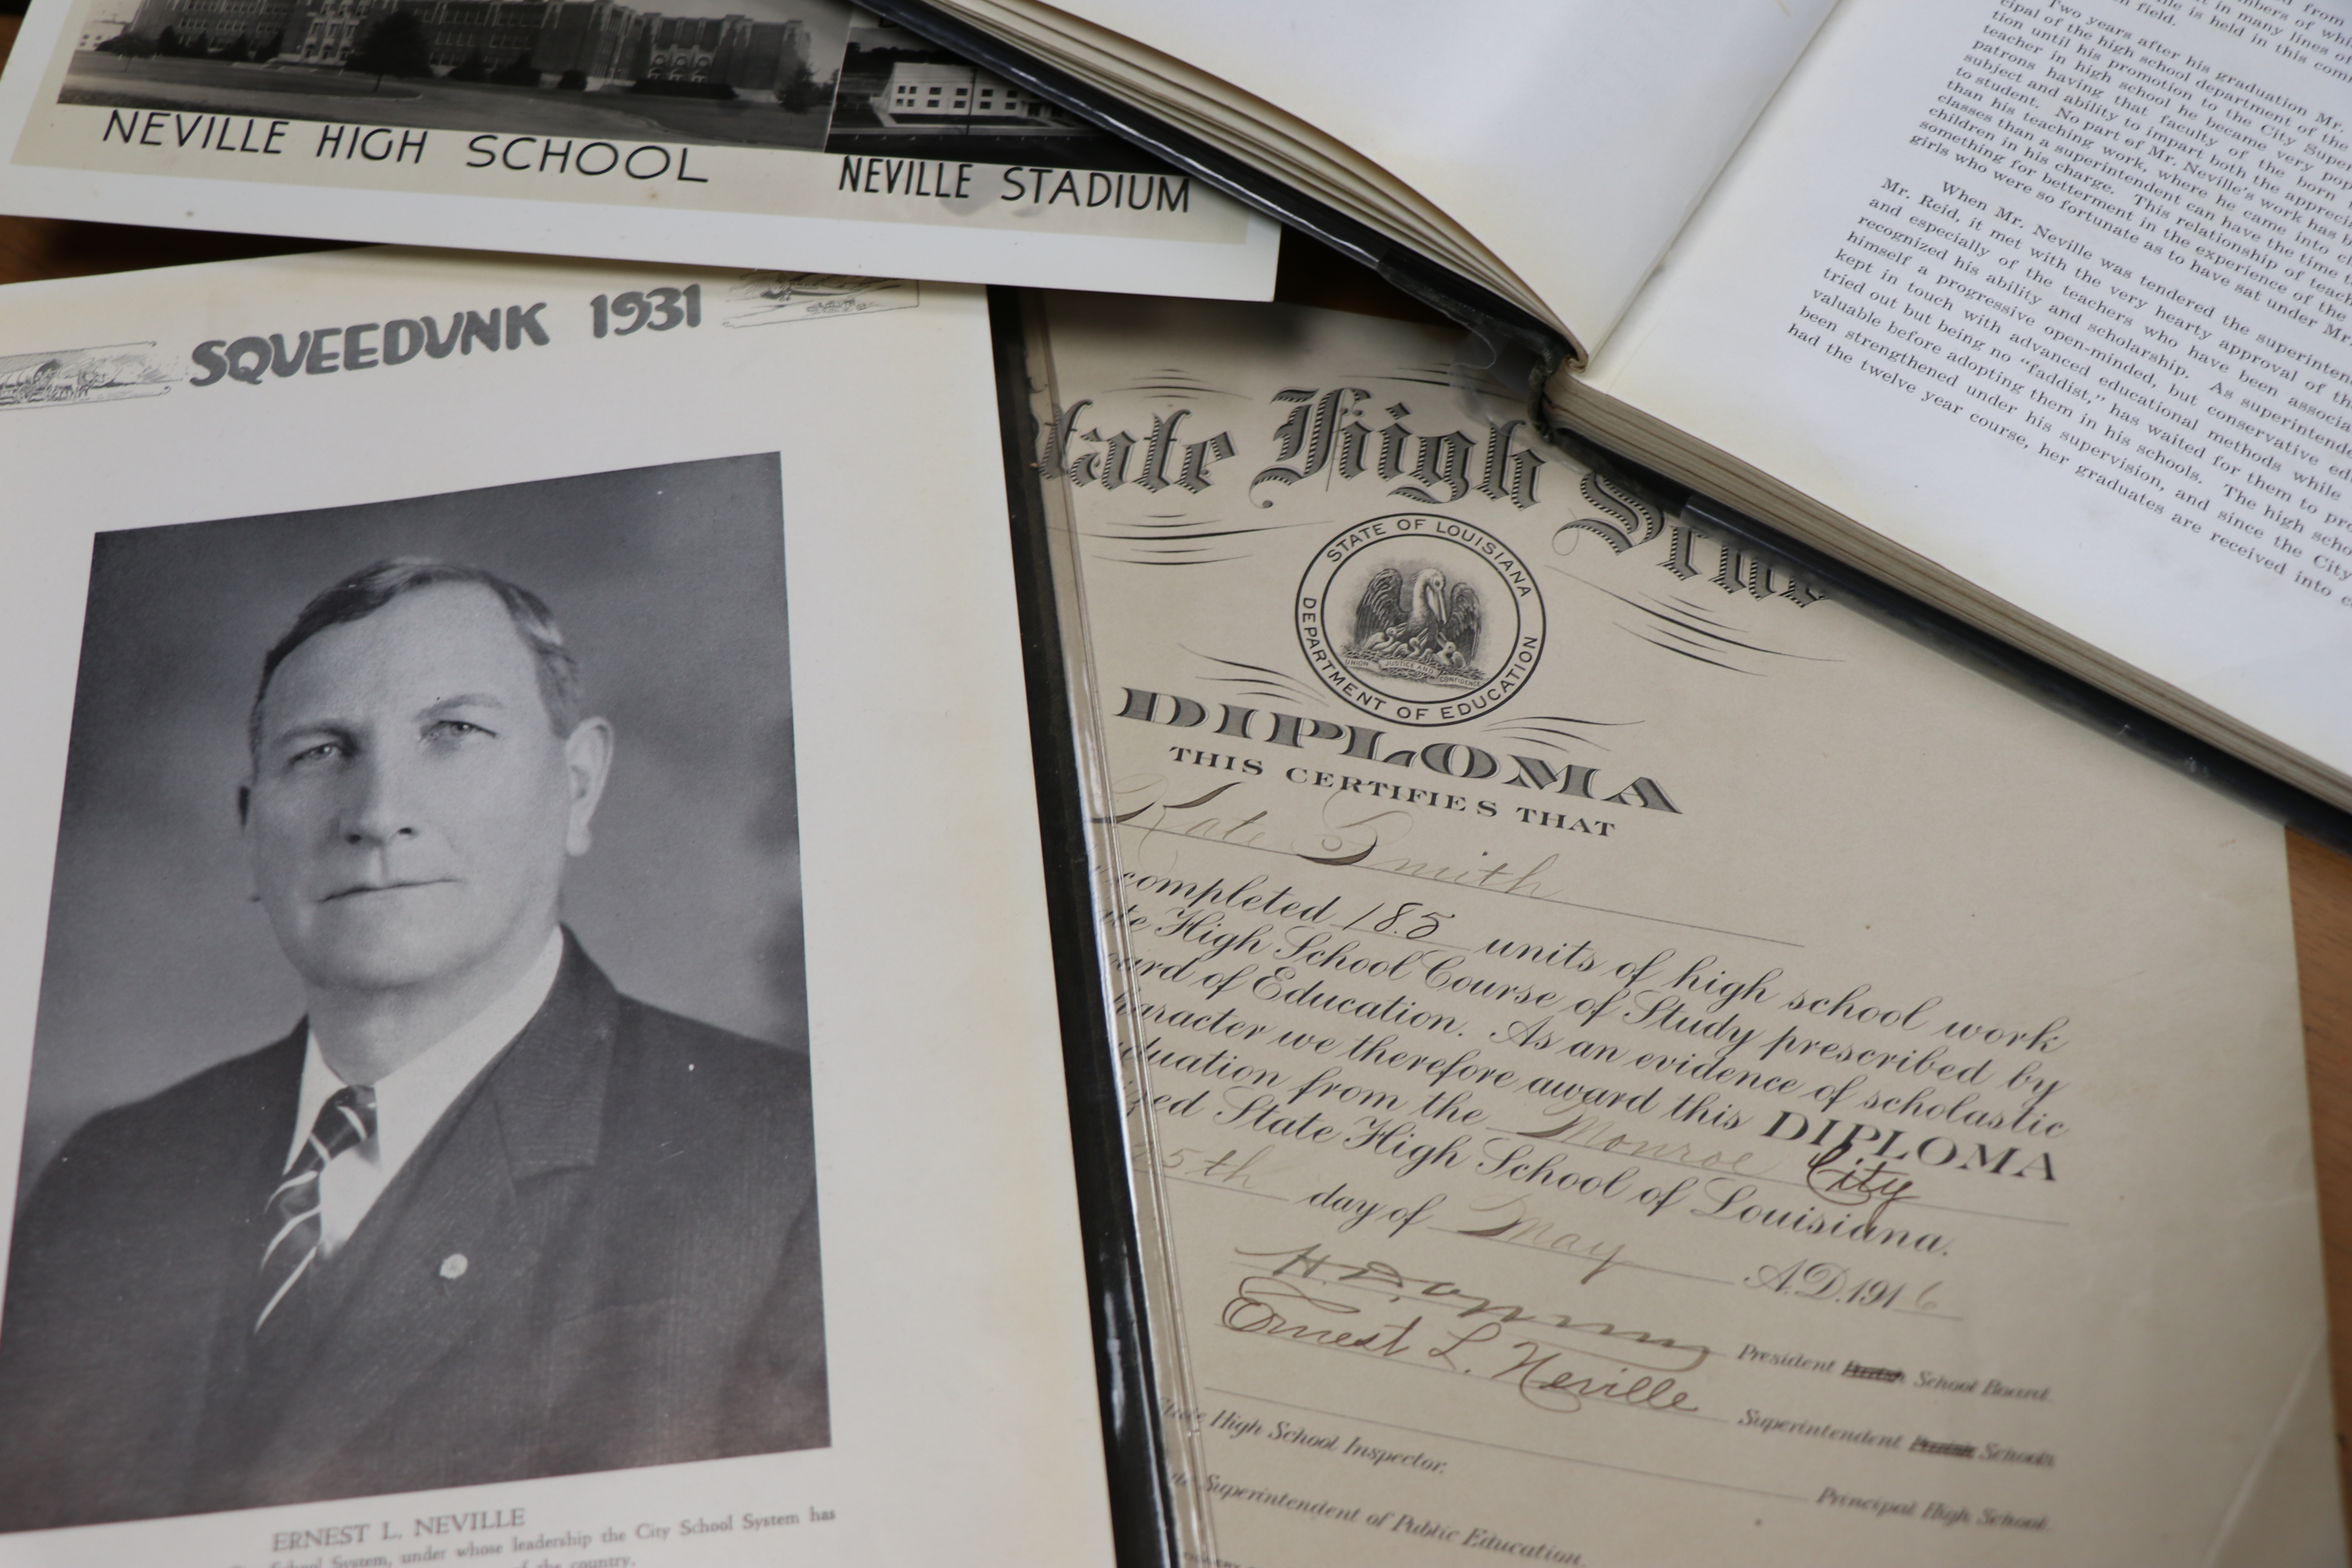 A table featuring various historical items:a 1931 Squeedunk yearbook open to a portrait of Ernest Long Neville, a high school diploma, and more